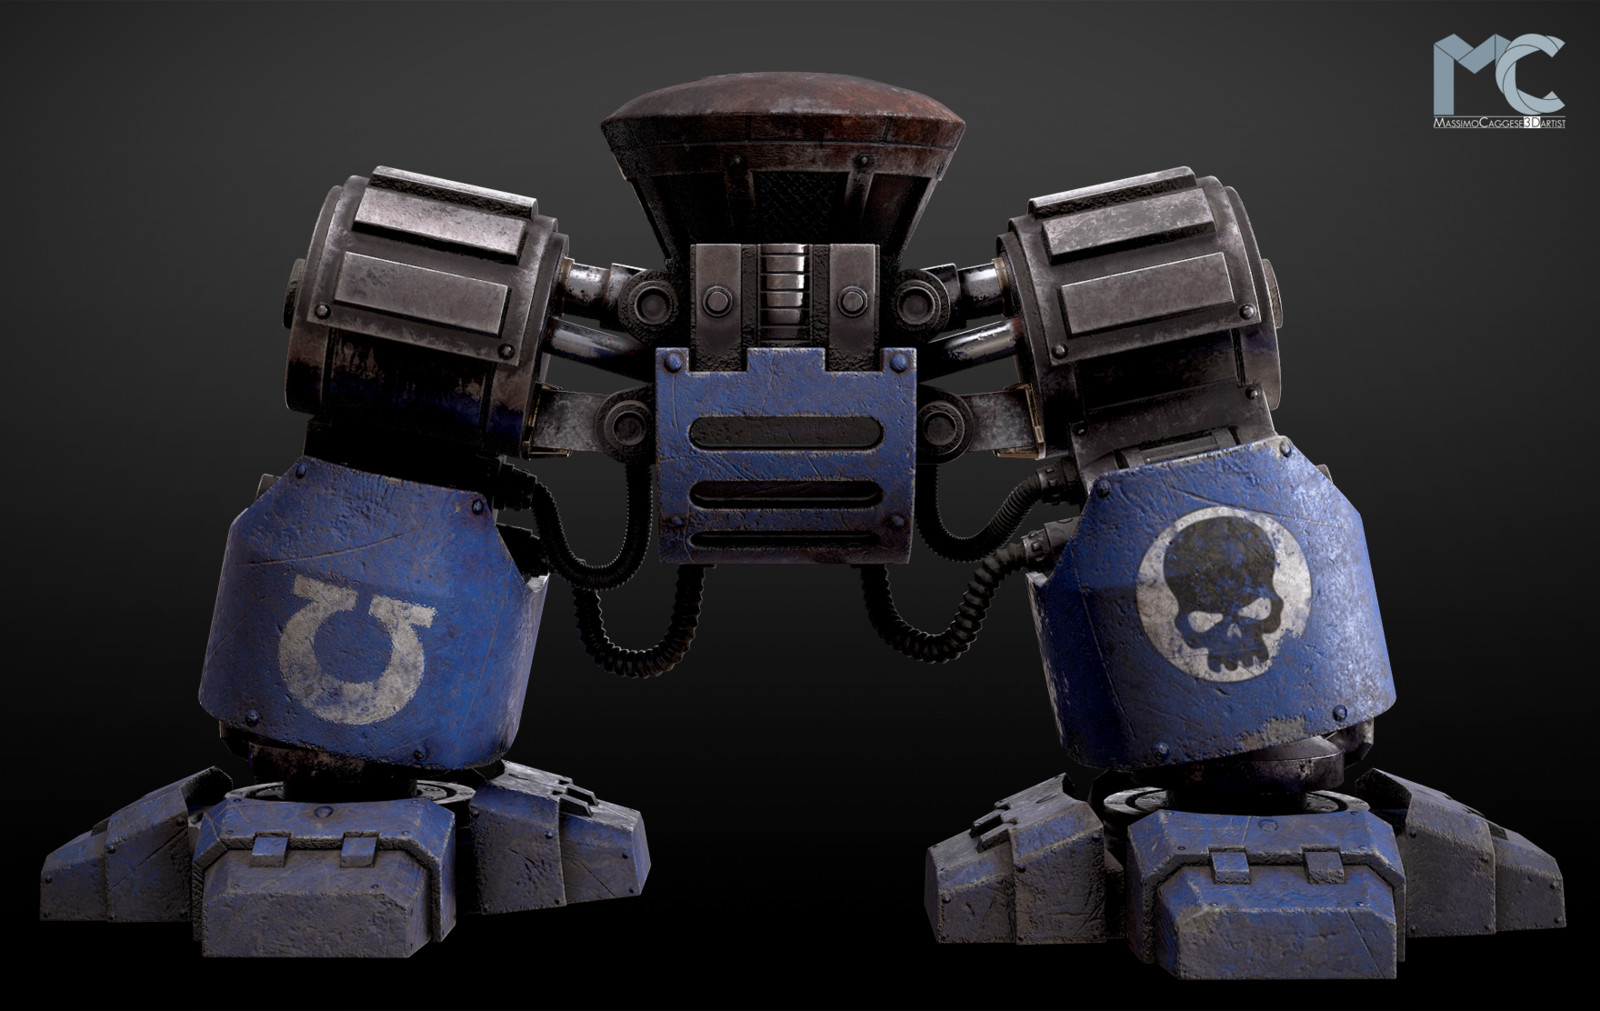 Front view (Marmoset Toolbag 3).